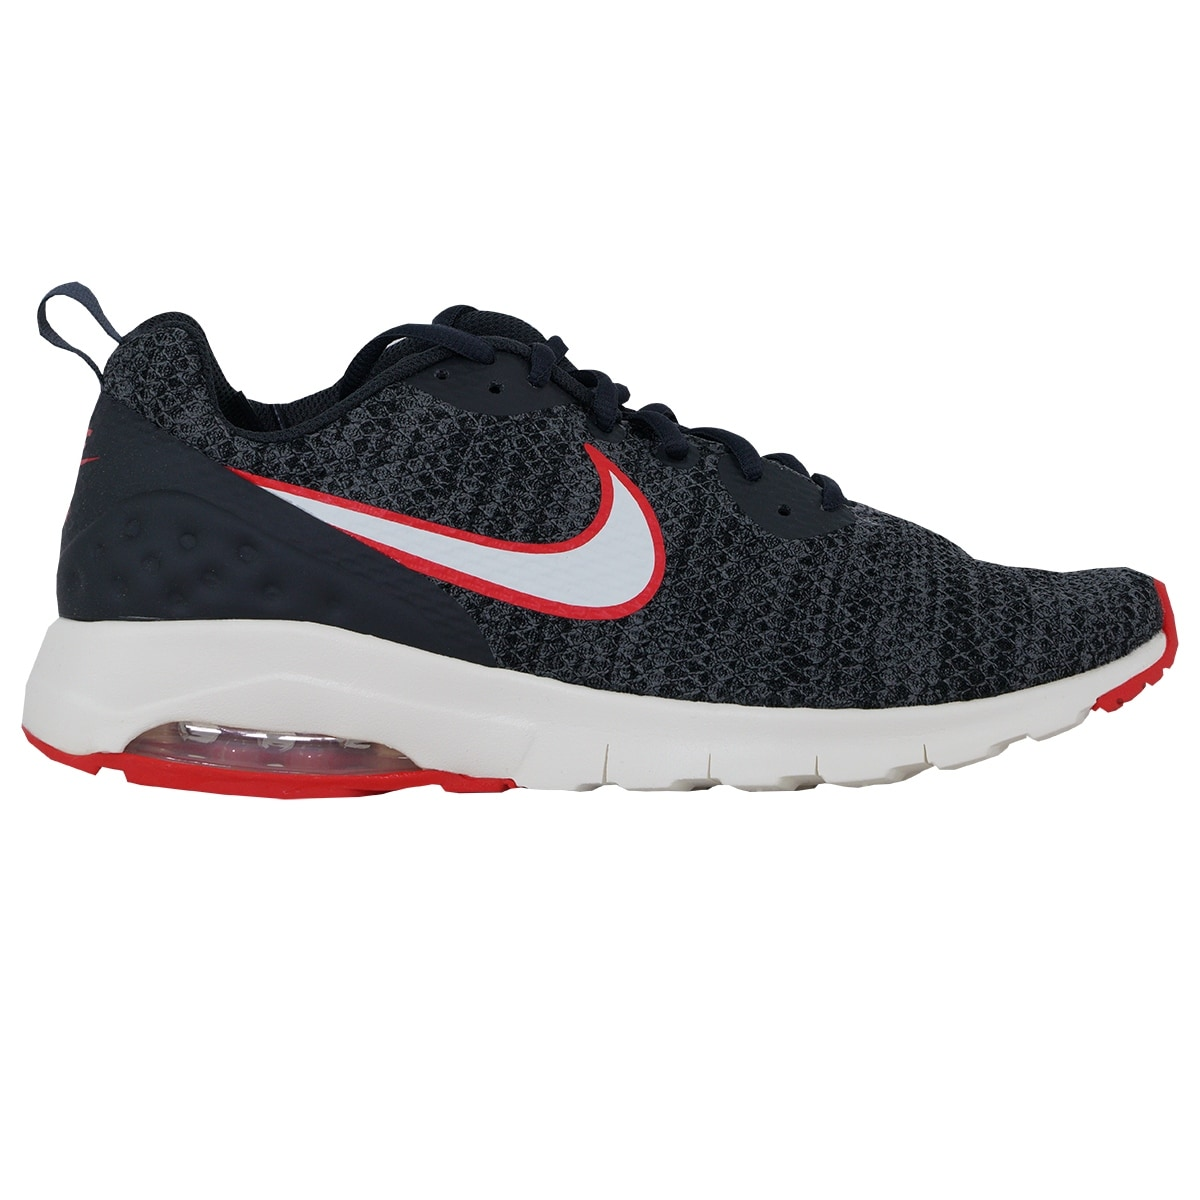 e0cab5a12a69f Nike Shoes | Shop our Best Clothing & Shoes Deals Online at Overstock